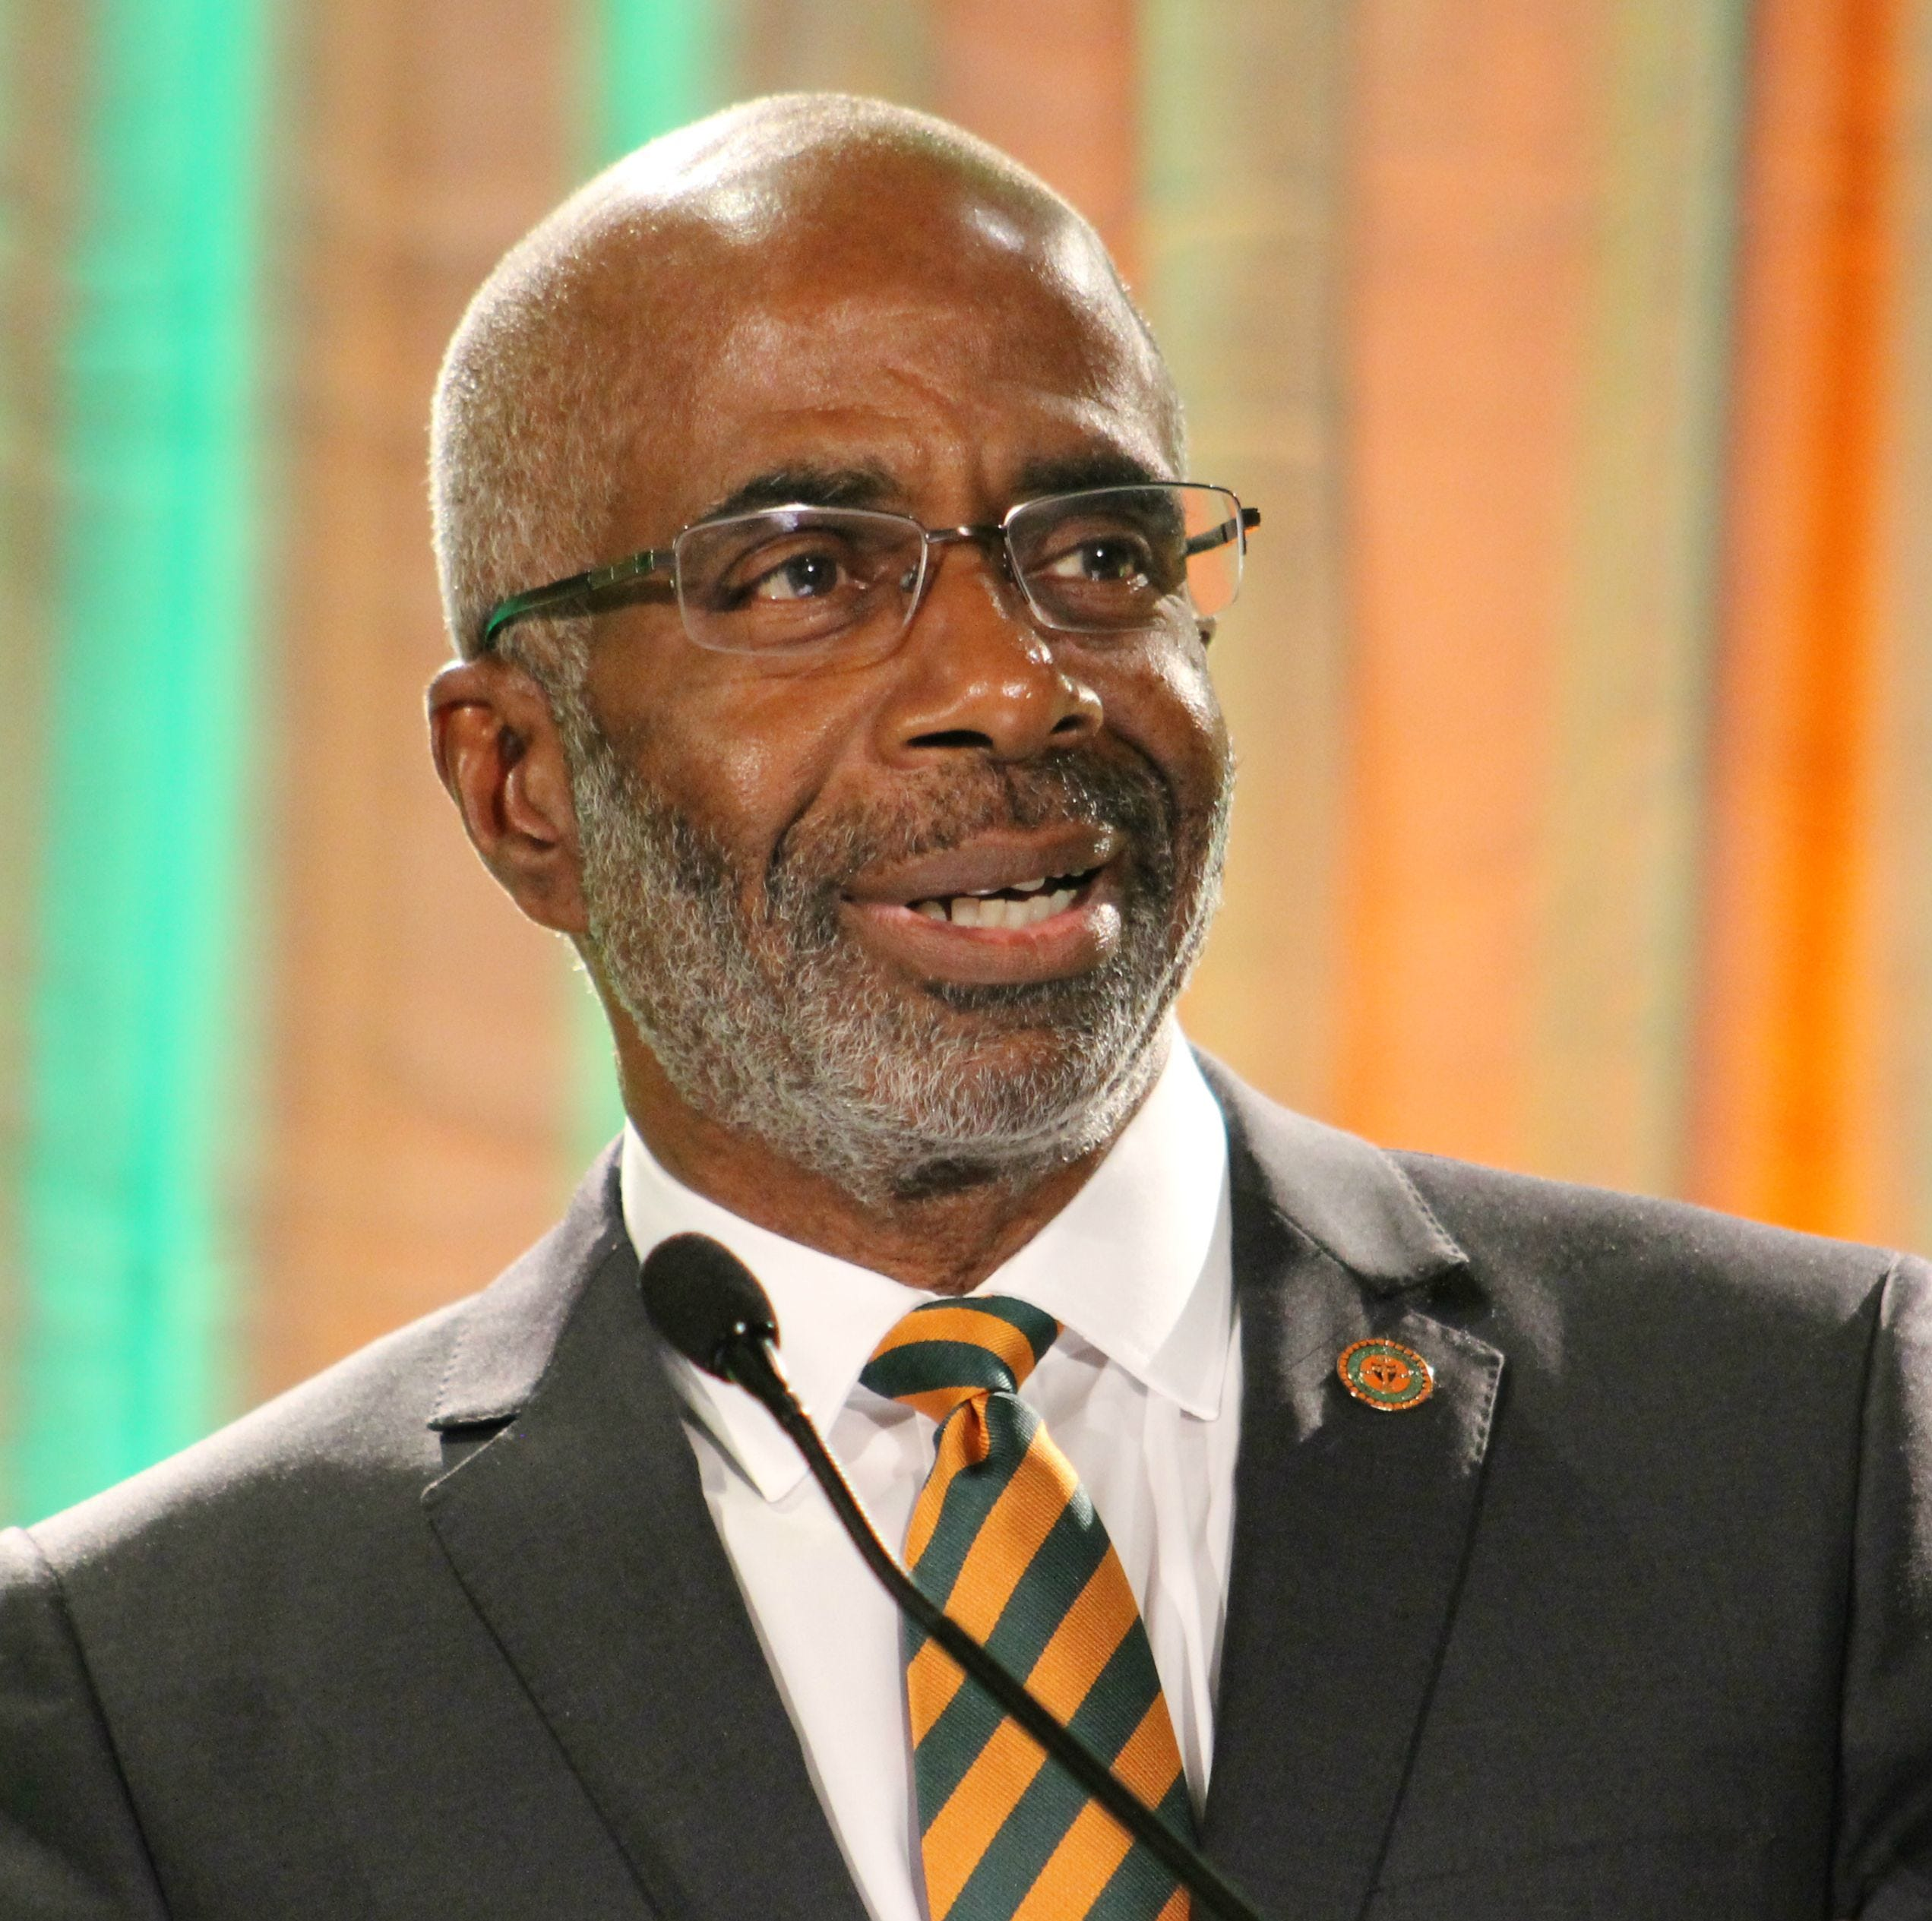 FAMU's Robinson rewarded with raise, performance bonus by trustees